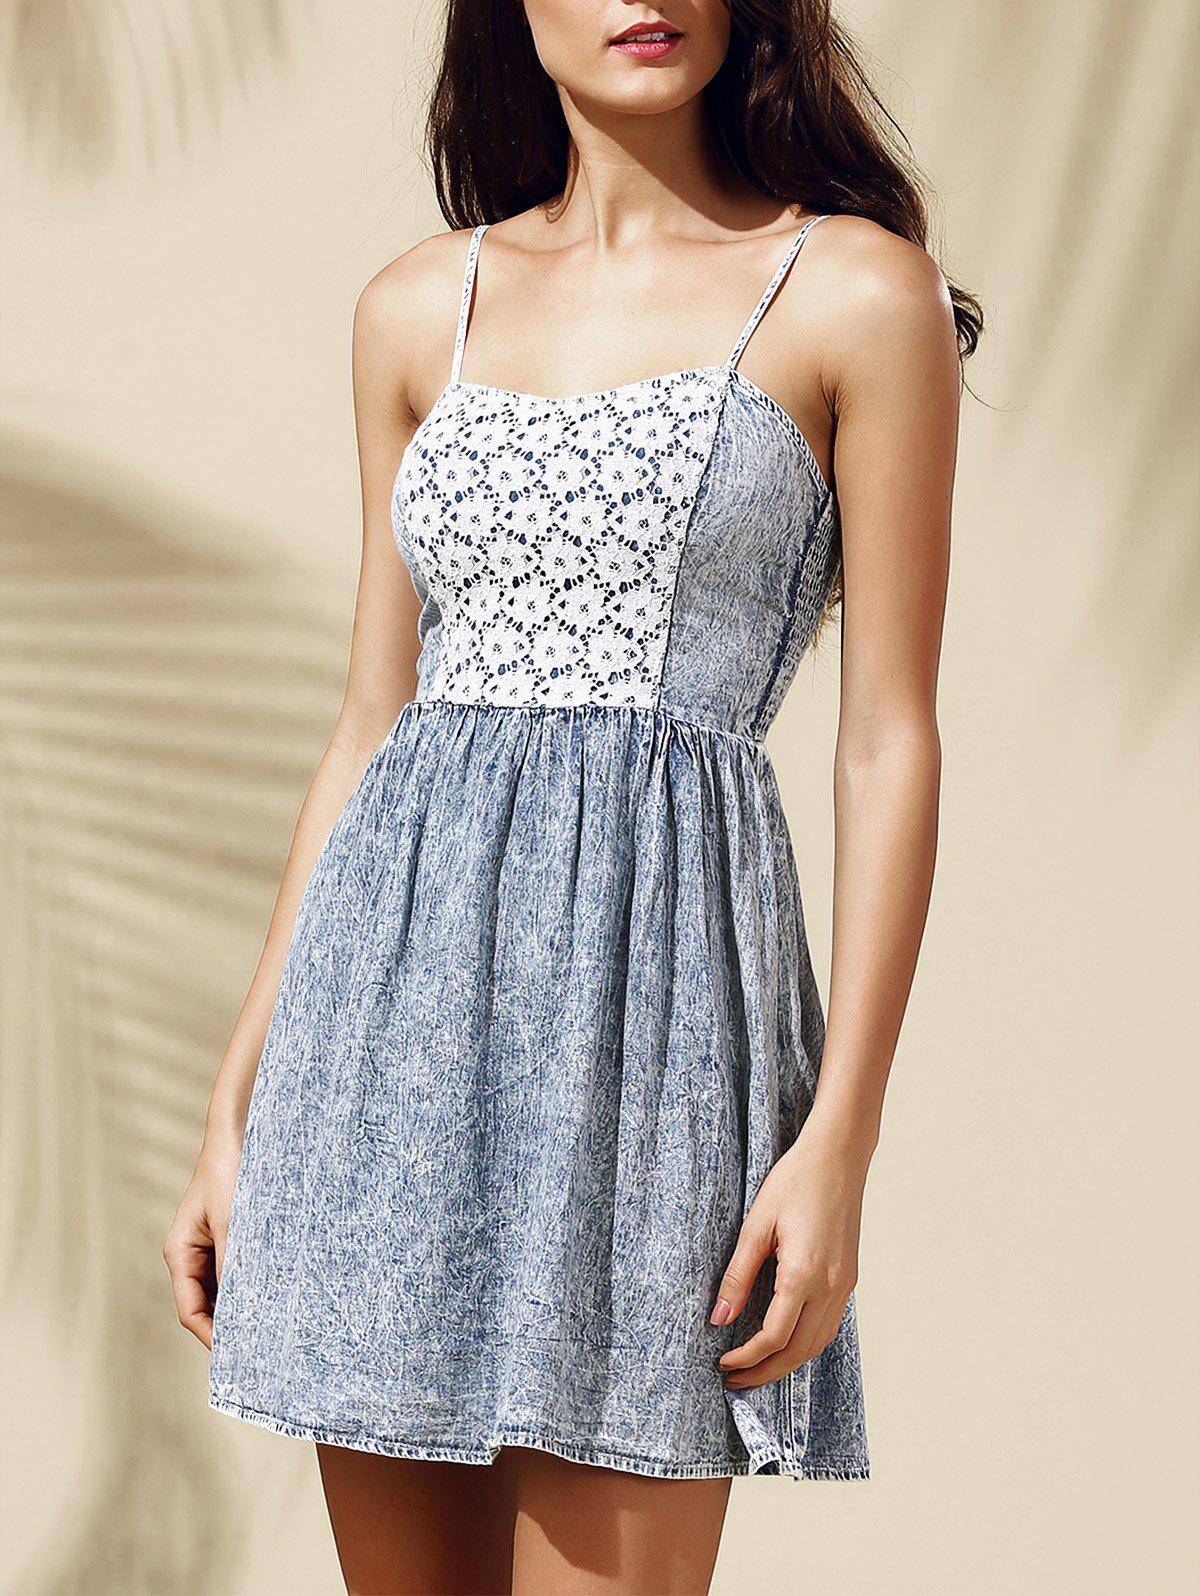 Cute High Waist Lace Spliced Women's Denim Cami Dress - LIGHT BLUE M